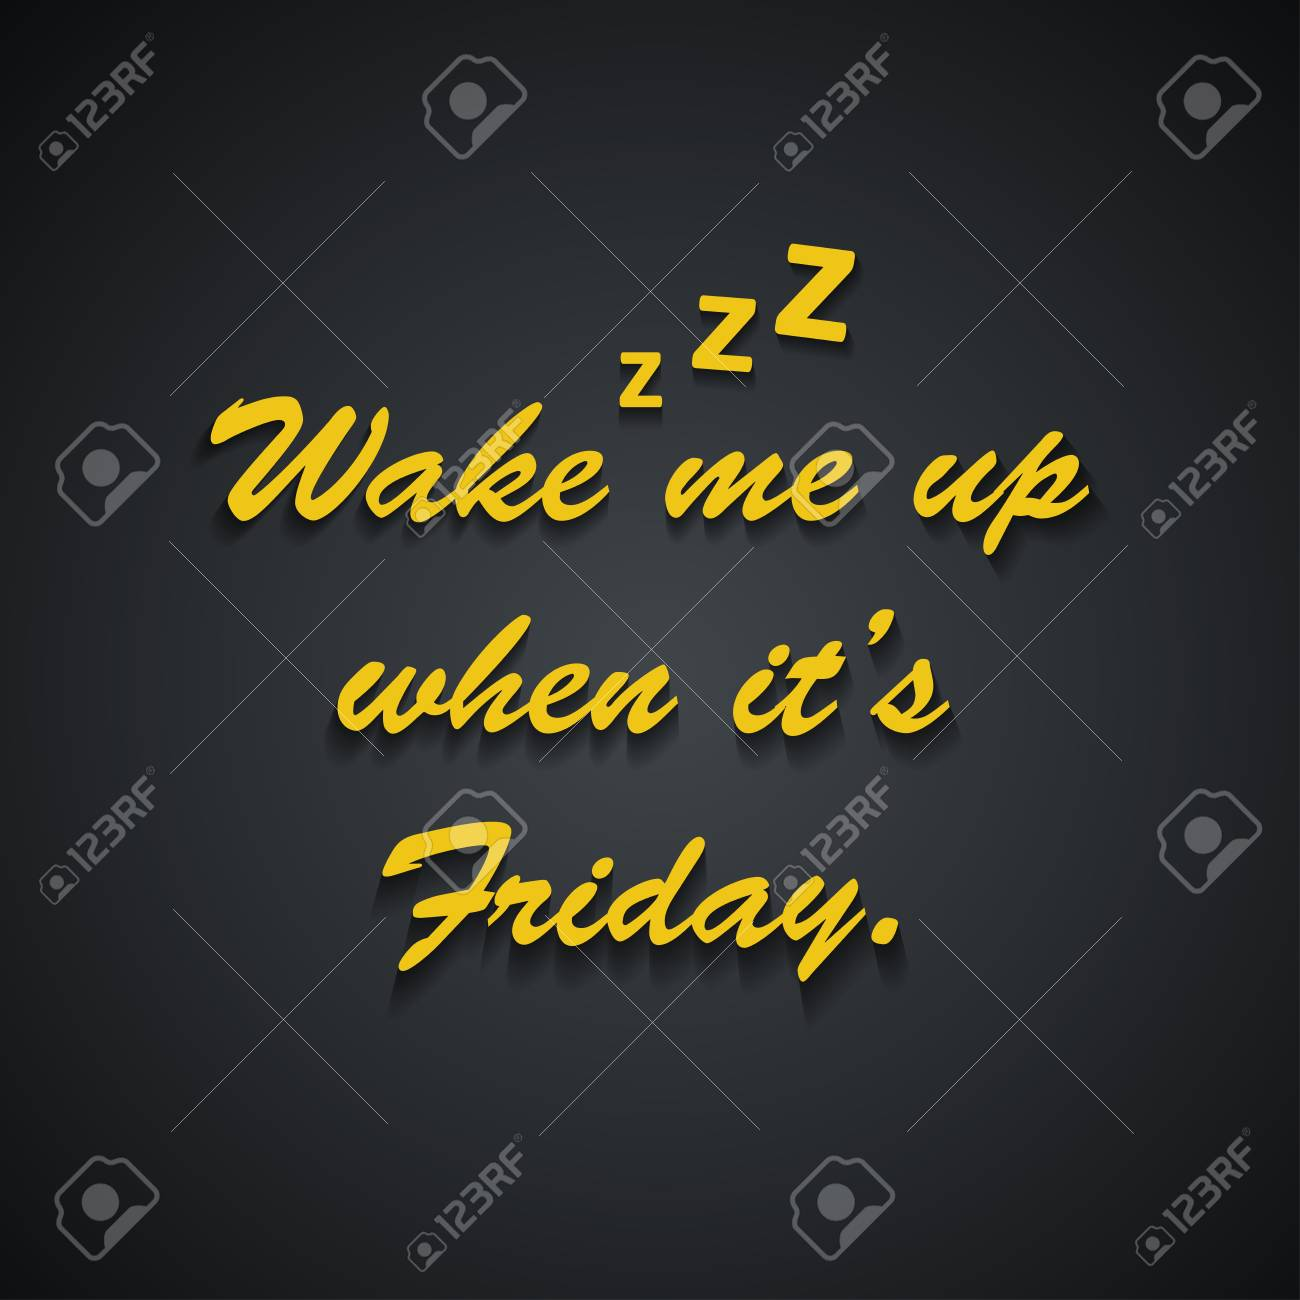 Wake me up when it\'s Friday - Weekend quotes - funny inscription..